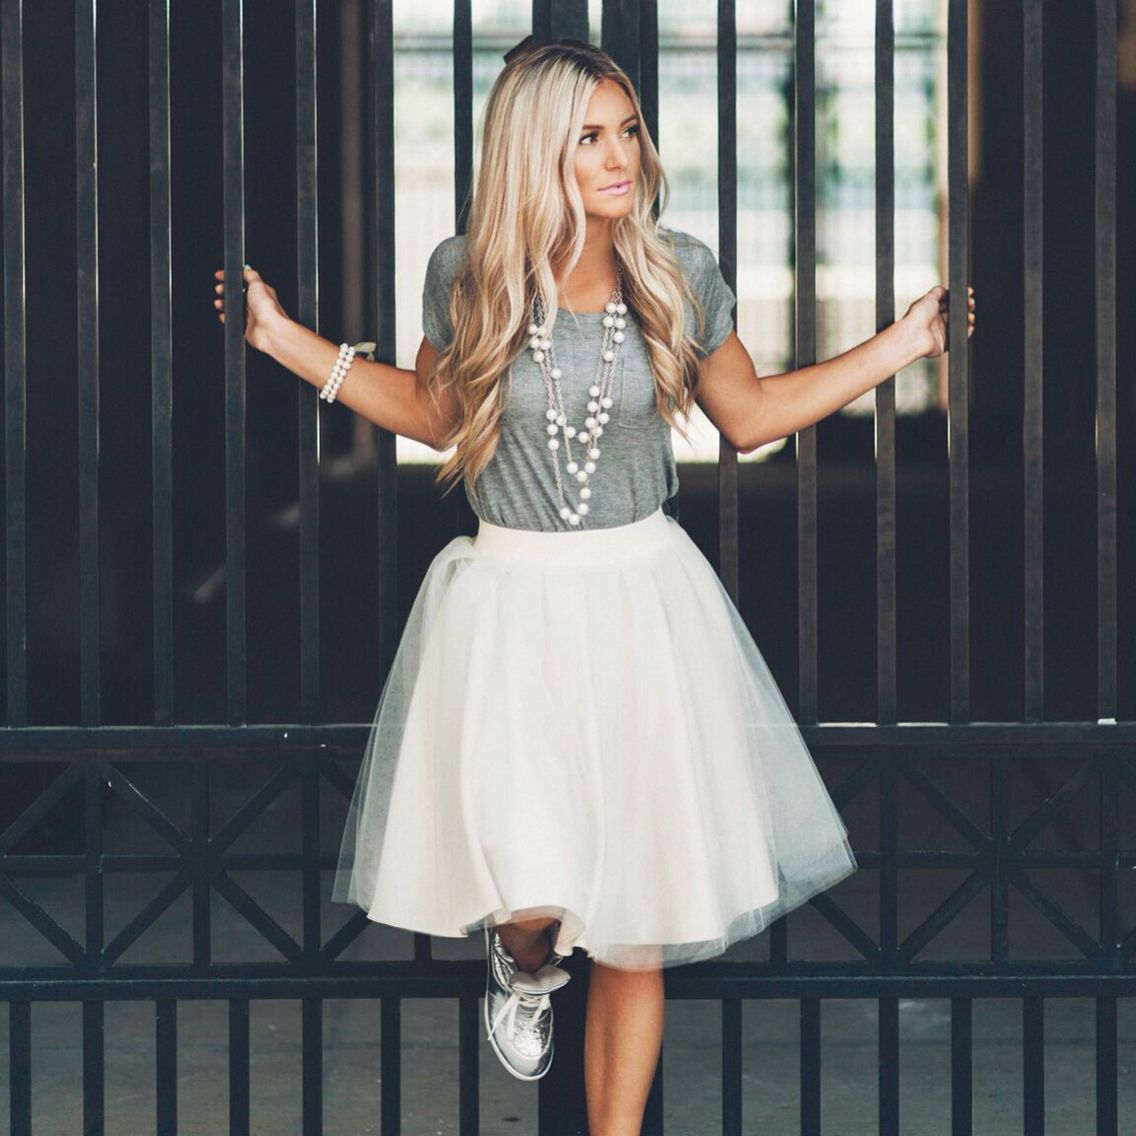 cb5a03cf9 The Ashley | Tulle Dresses & Skirts | Shower outfits, Skirt outfits ...